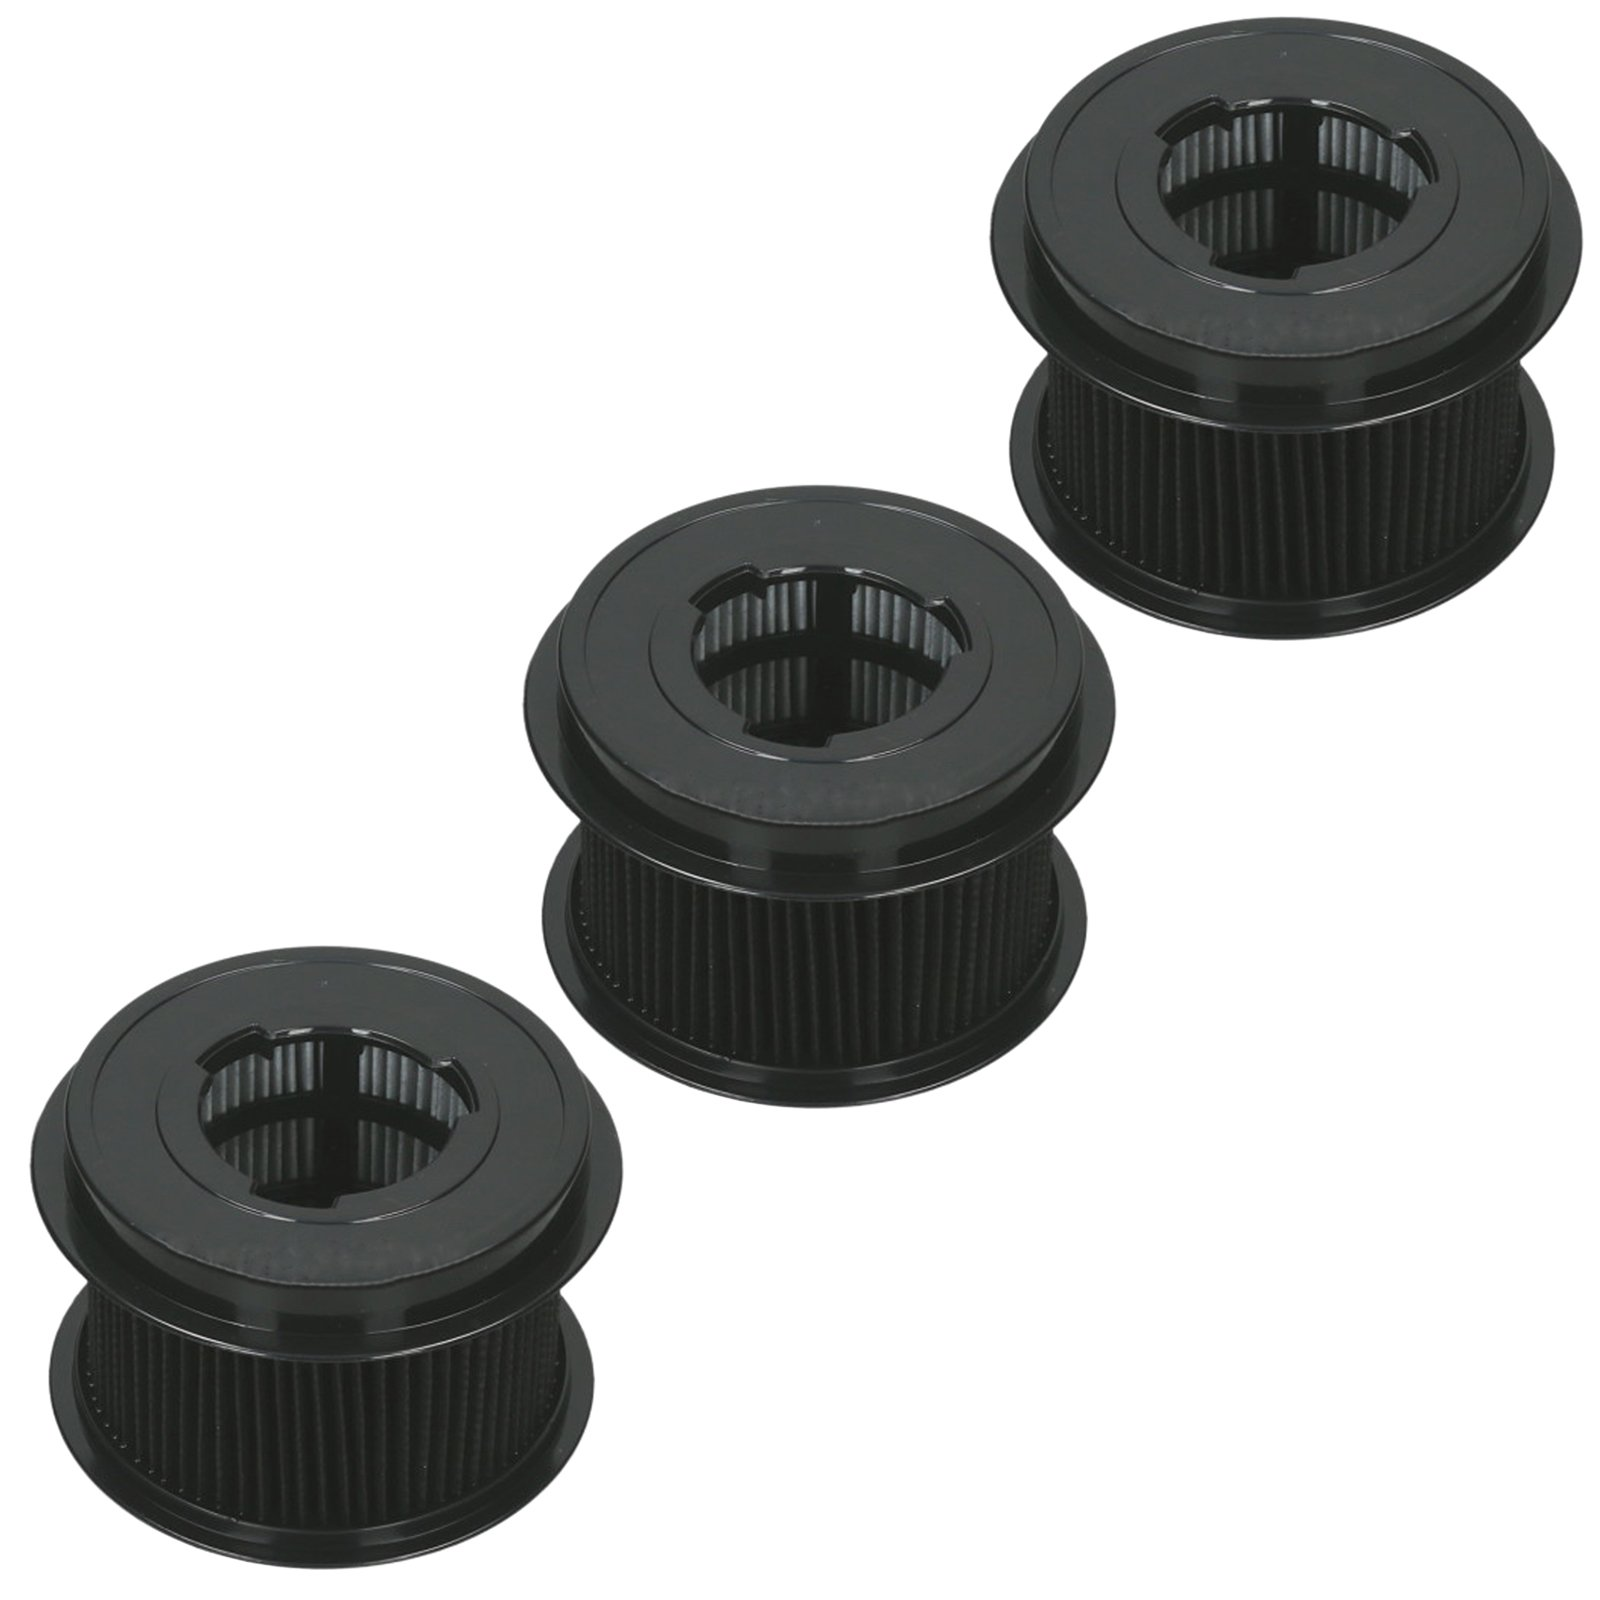 Spares2go Pleated Circular HEPA Filter for Bissell PowerForce CleanView Vacuum Cleaner (Pack of 3)